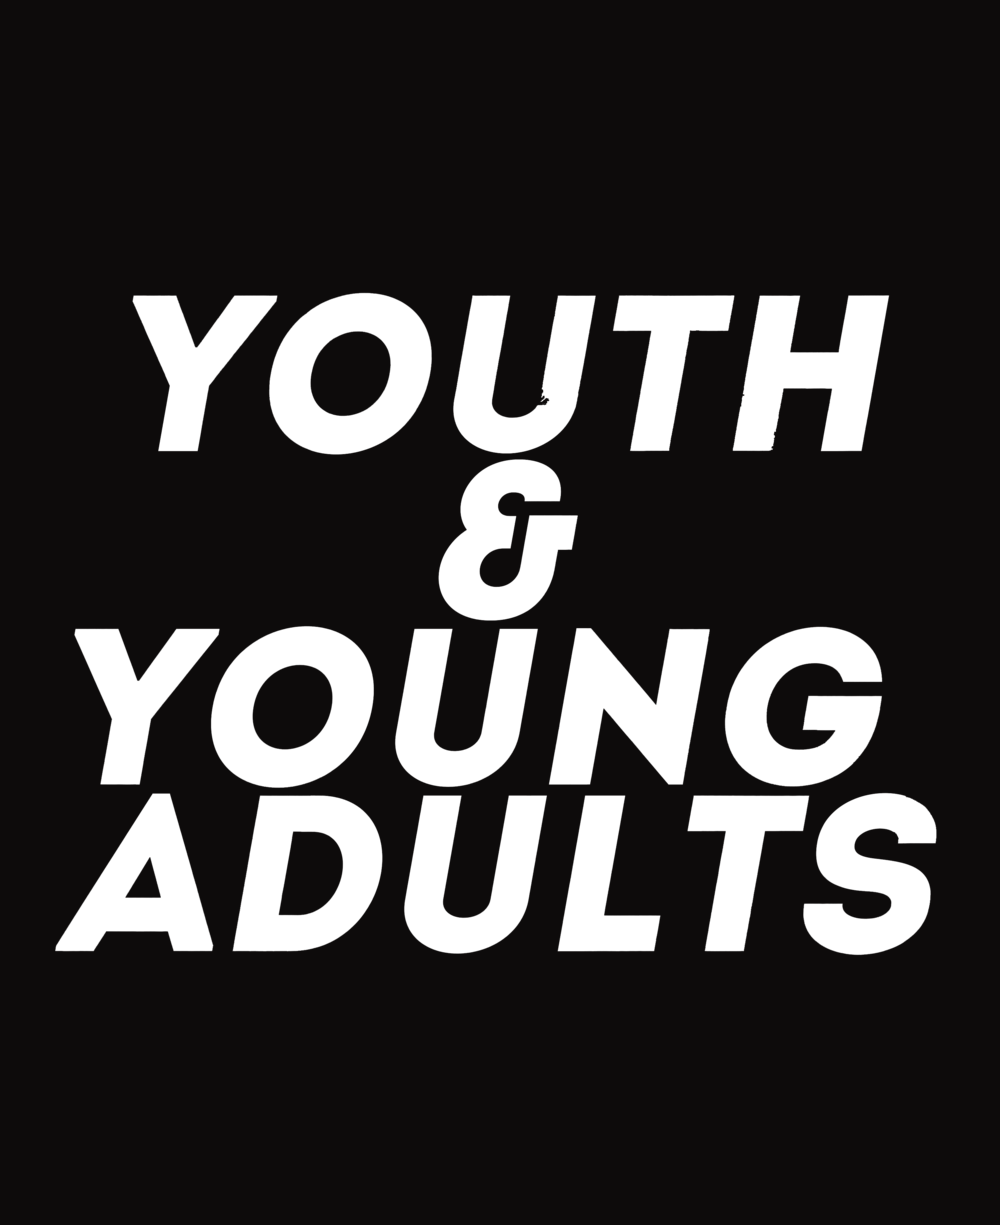 Youth_headerV2.png